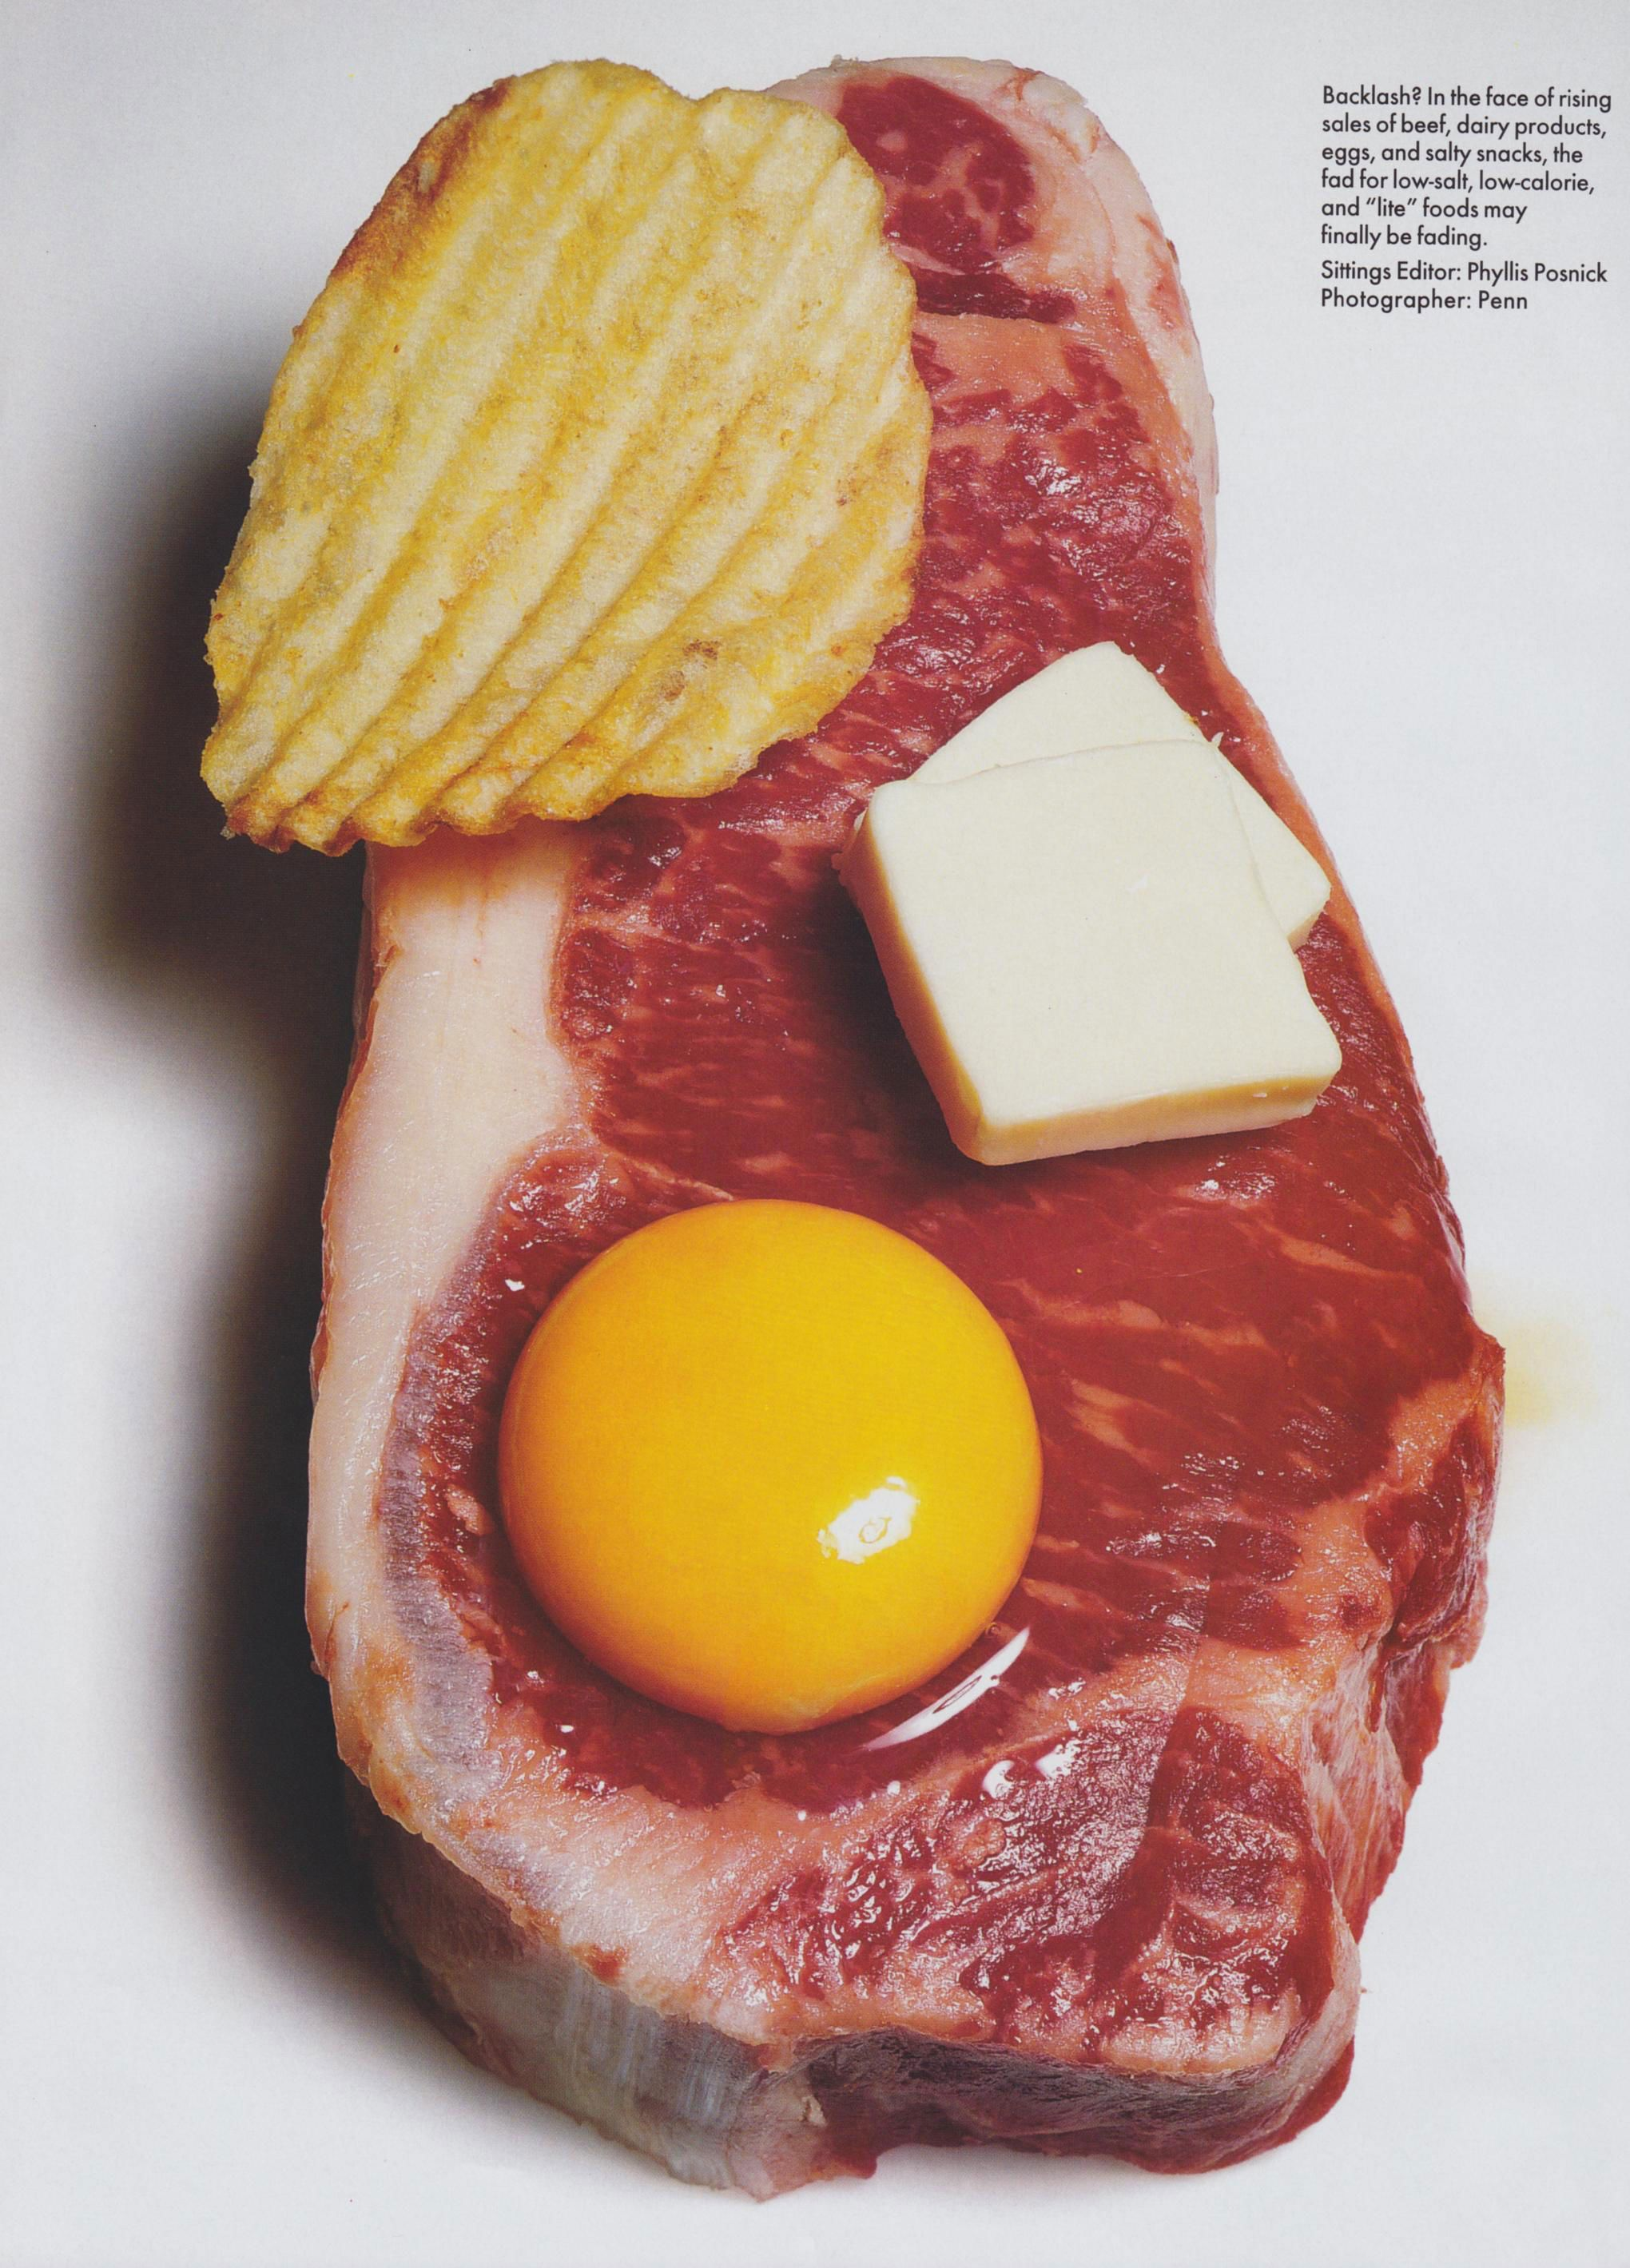 "FEATURES- Vogue [US] (August '94) by Irving Penn    ""Backlash? In the face of rising sales of beef, dairy products, eggs, and salty snacks, the fad for low-salt, low-calorie, and 'lite' foods may finally be fading.""    Well, you can't fault optimism."